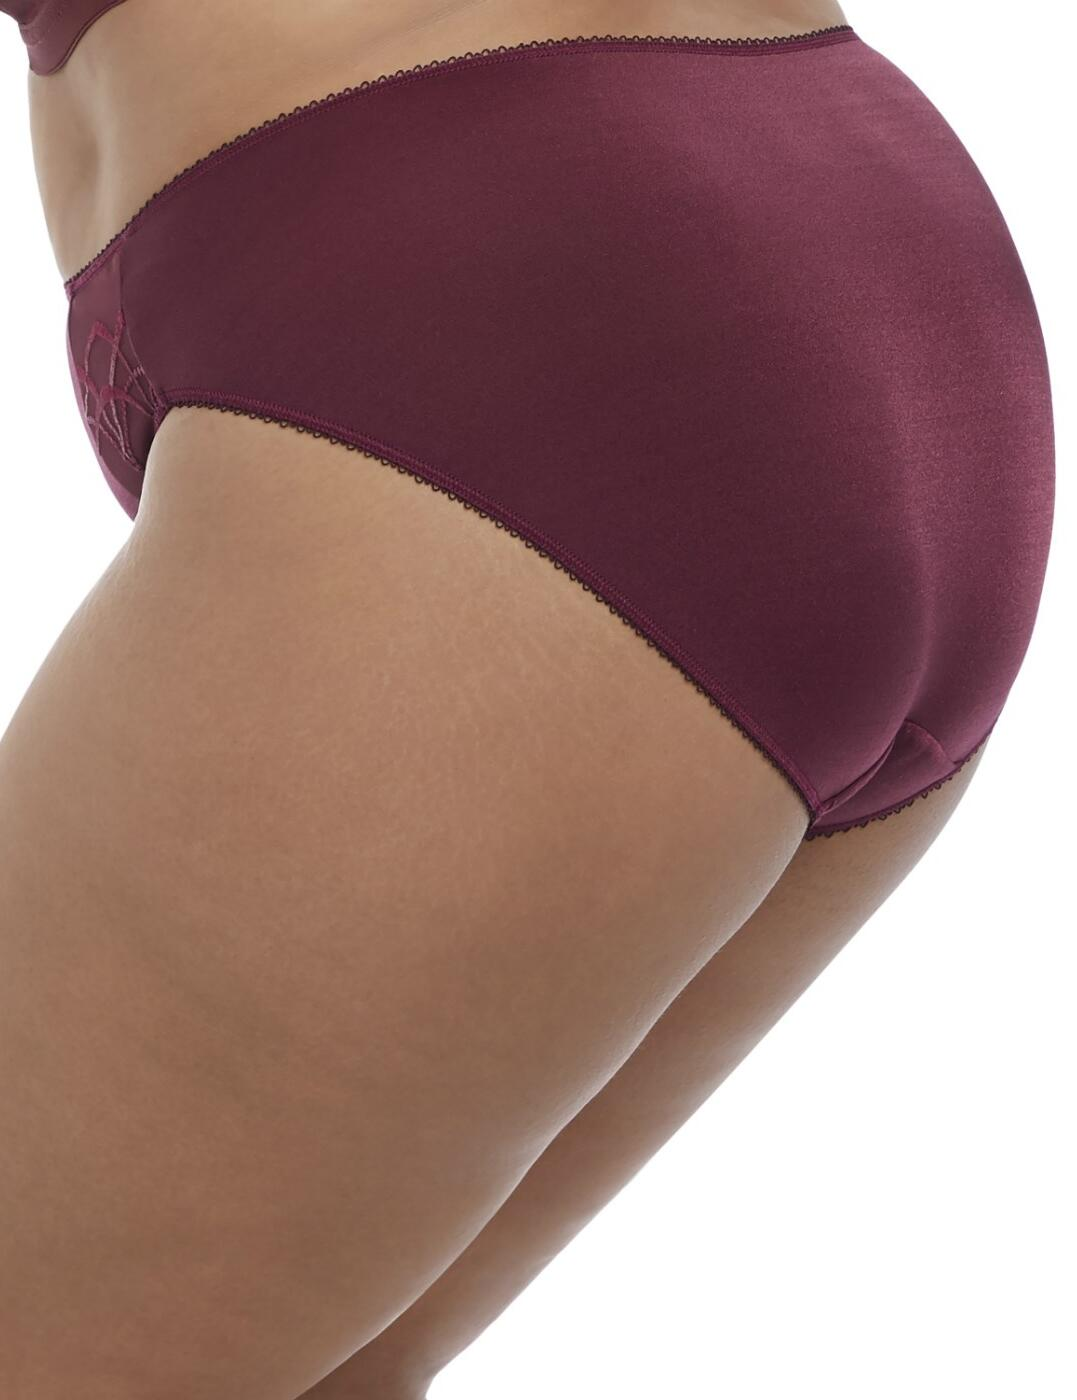 Elomi-Lingerie-Cate-Brief-Knickers-4035-New-Womens-Lingerie thumbnail 7